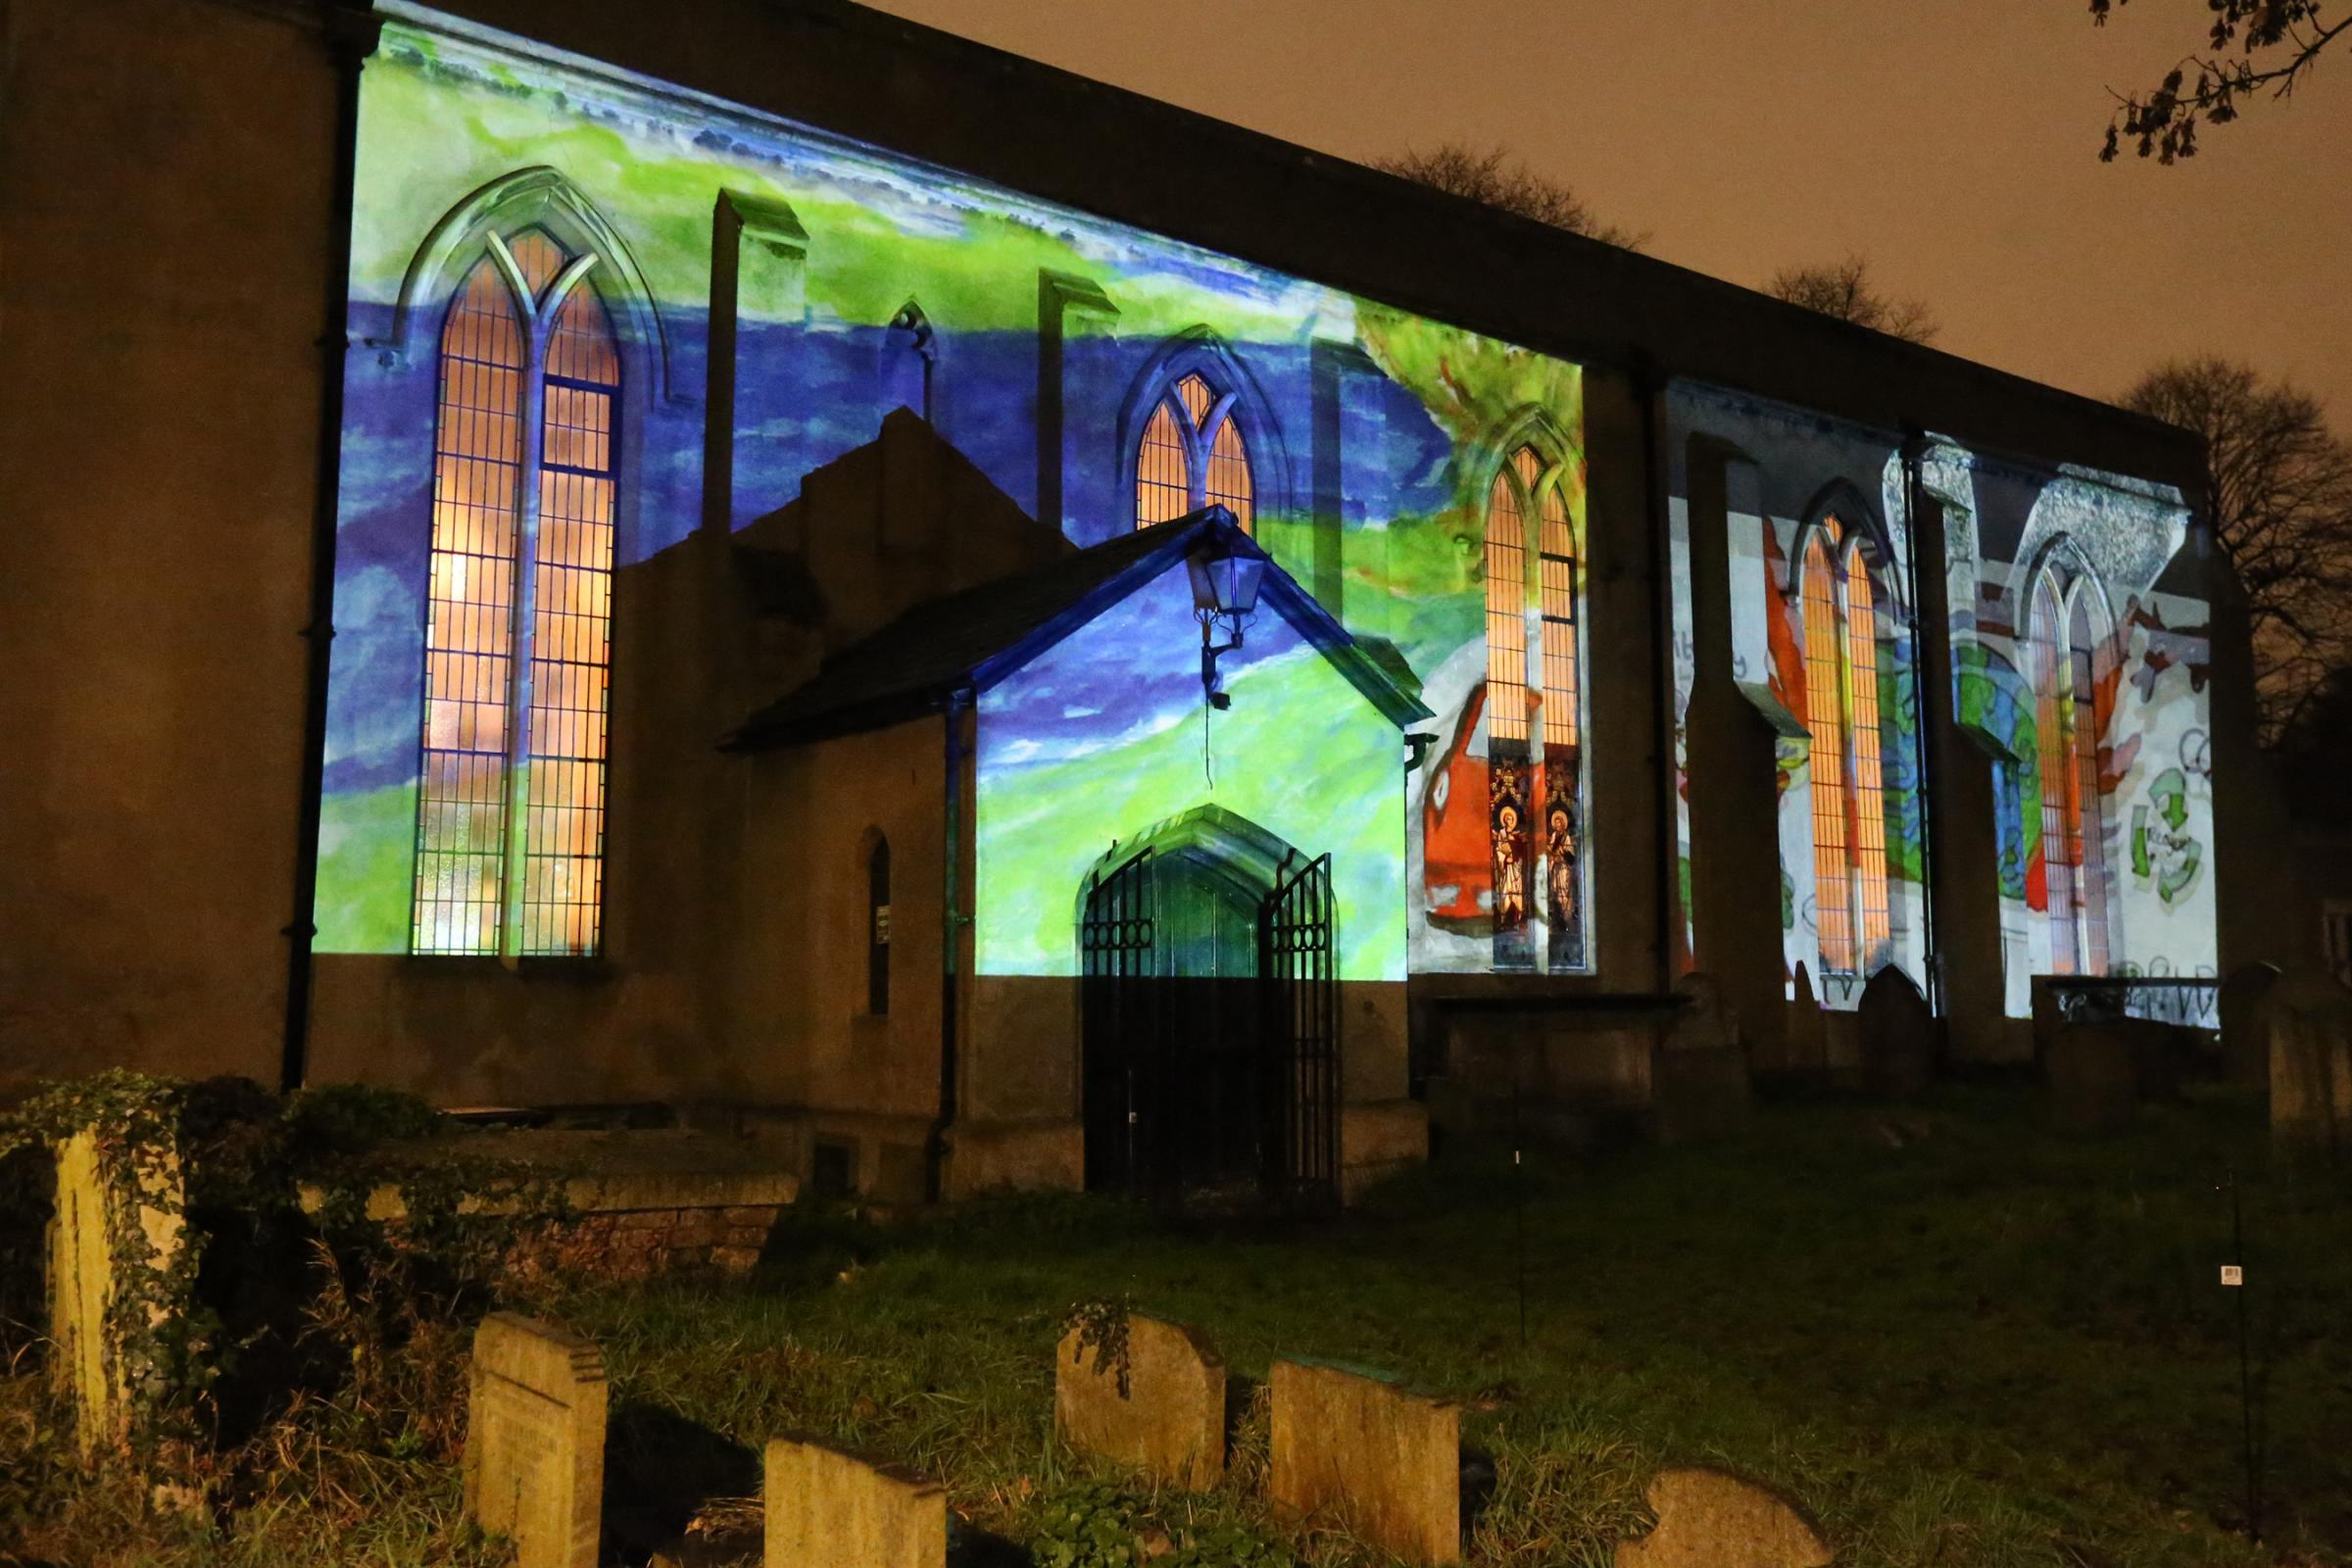 Last year's Advent(us) project at St Mary's saw the building lit up with festive images.